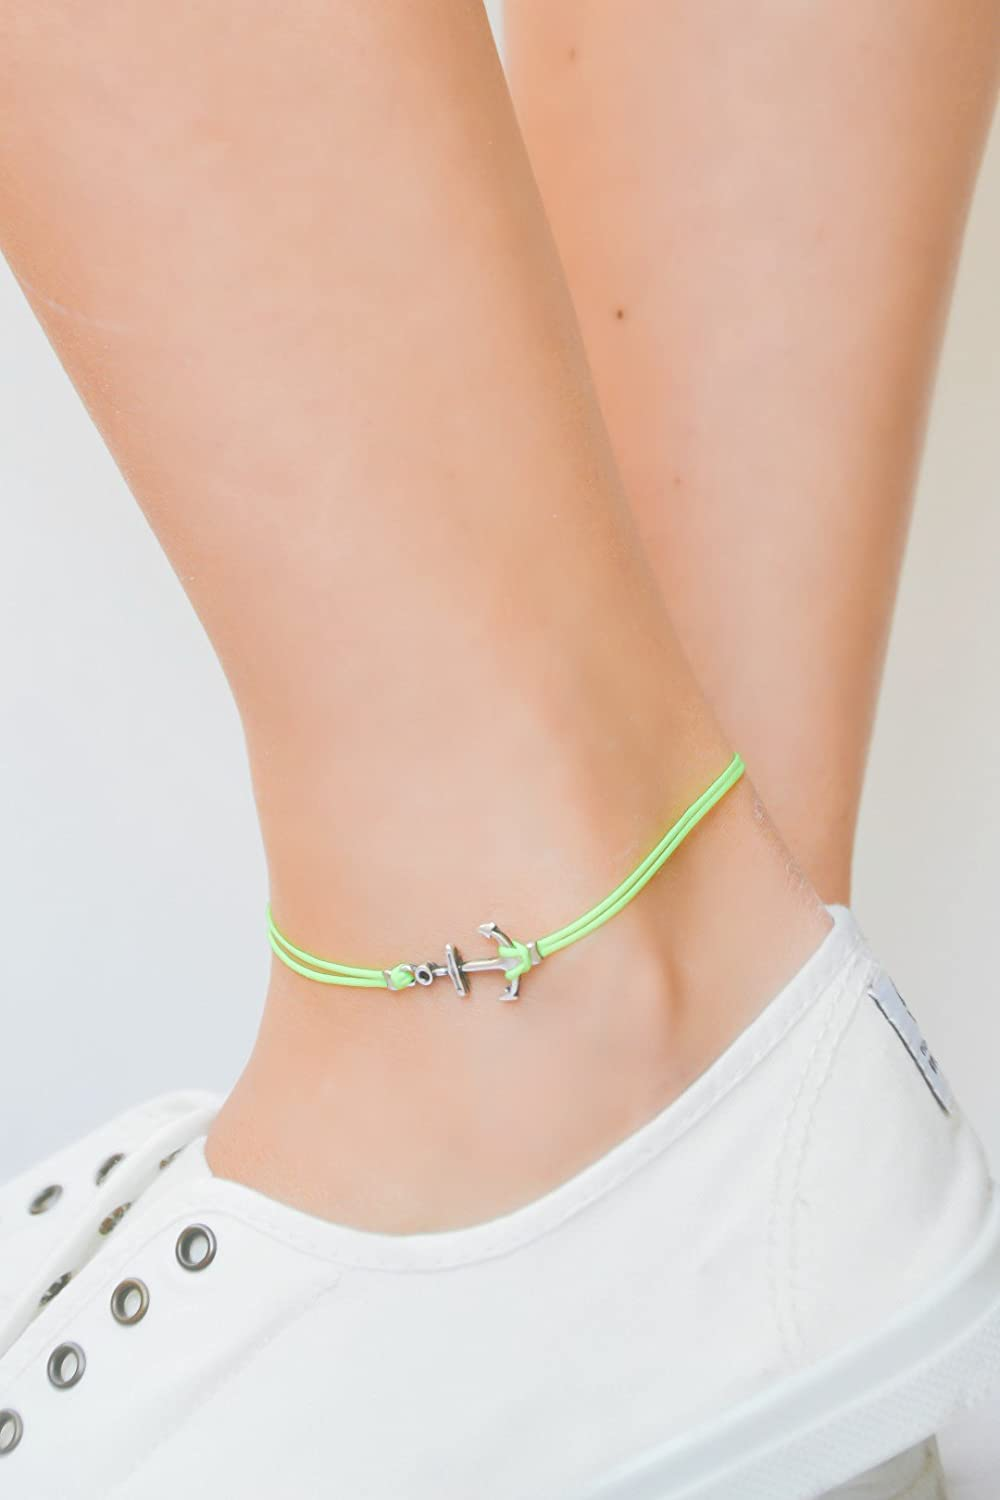 Anchor anklet, yellow ankle bracelet with silver anchor charm, neon ankle bracelet, gift for her, nautical, minimalist jewelry, sailing boat